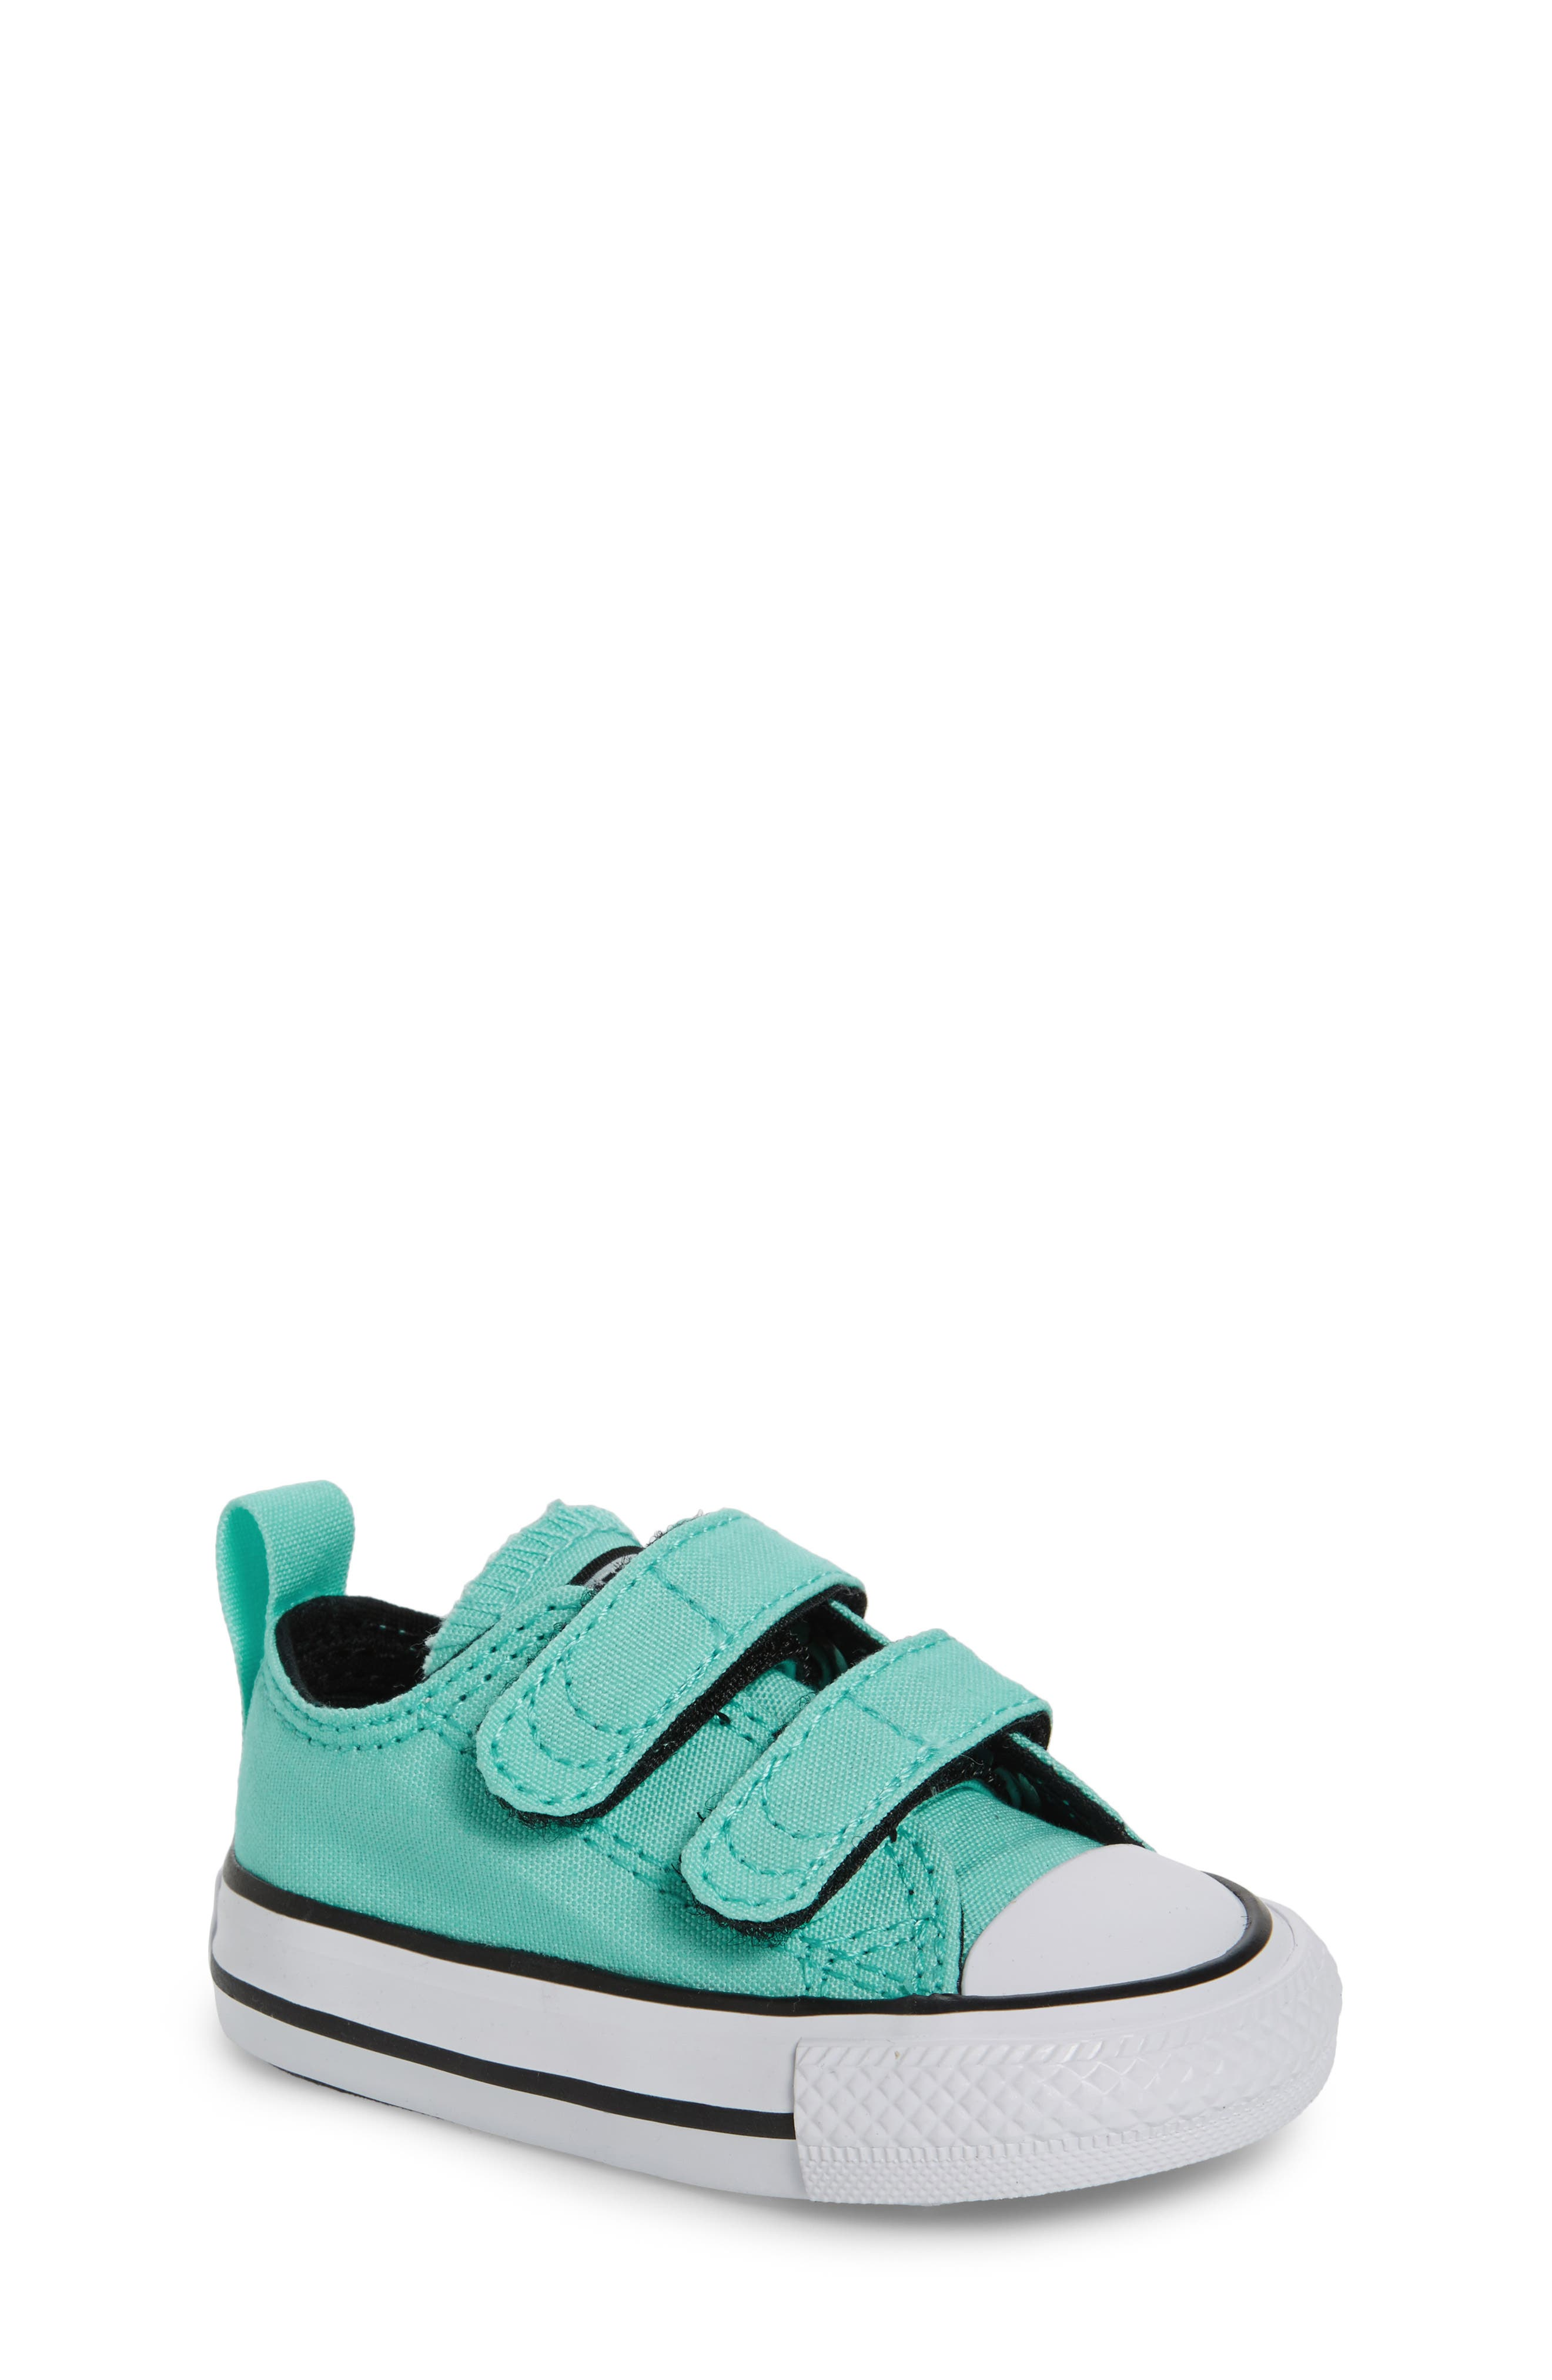 Chuck Taylor<sup>®</sup> All Star<sup>®</sup> 2V Low-Top Sneaker,                             Main thumbnail 1, color,